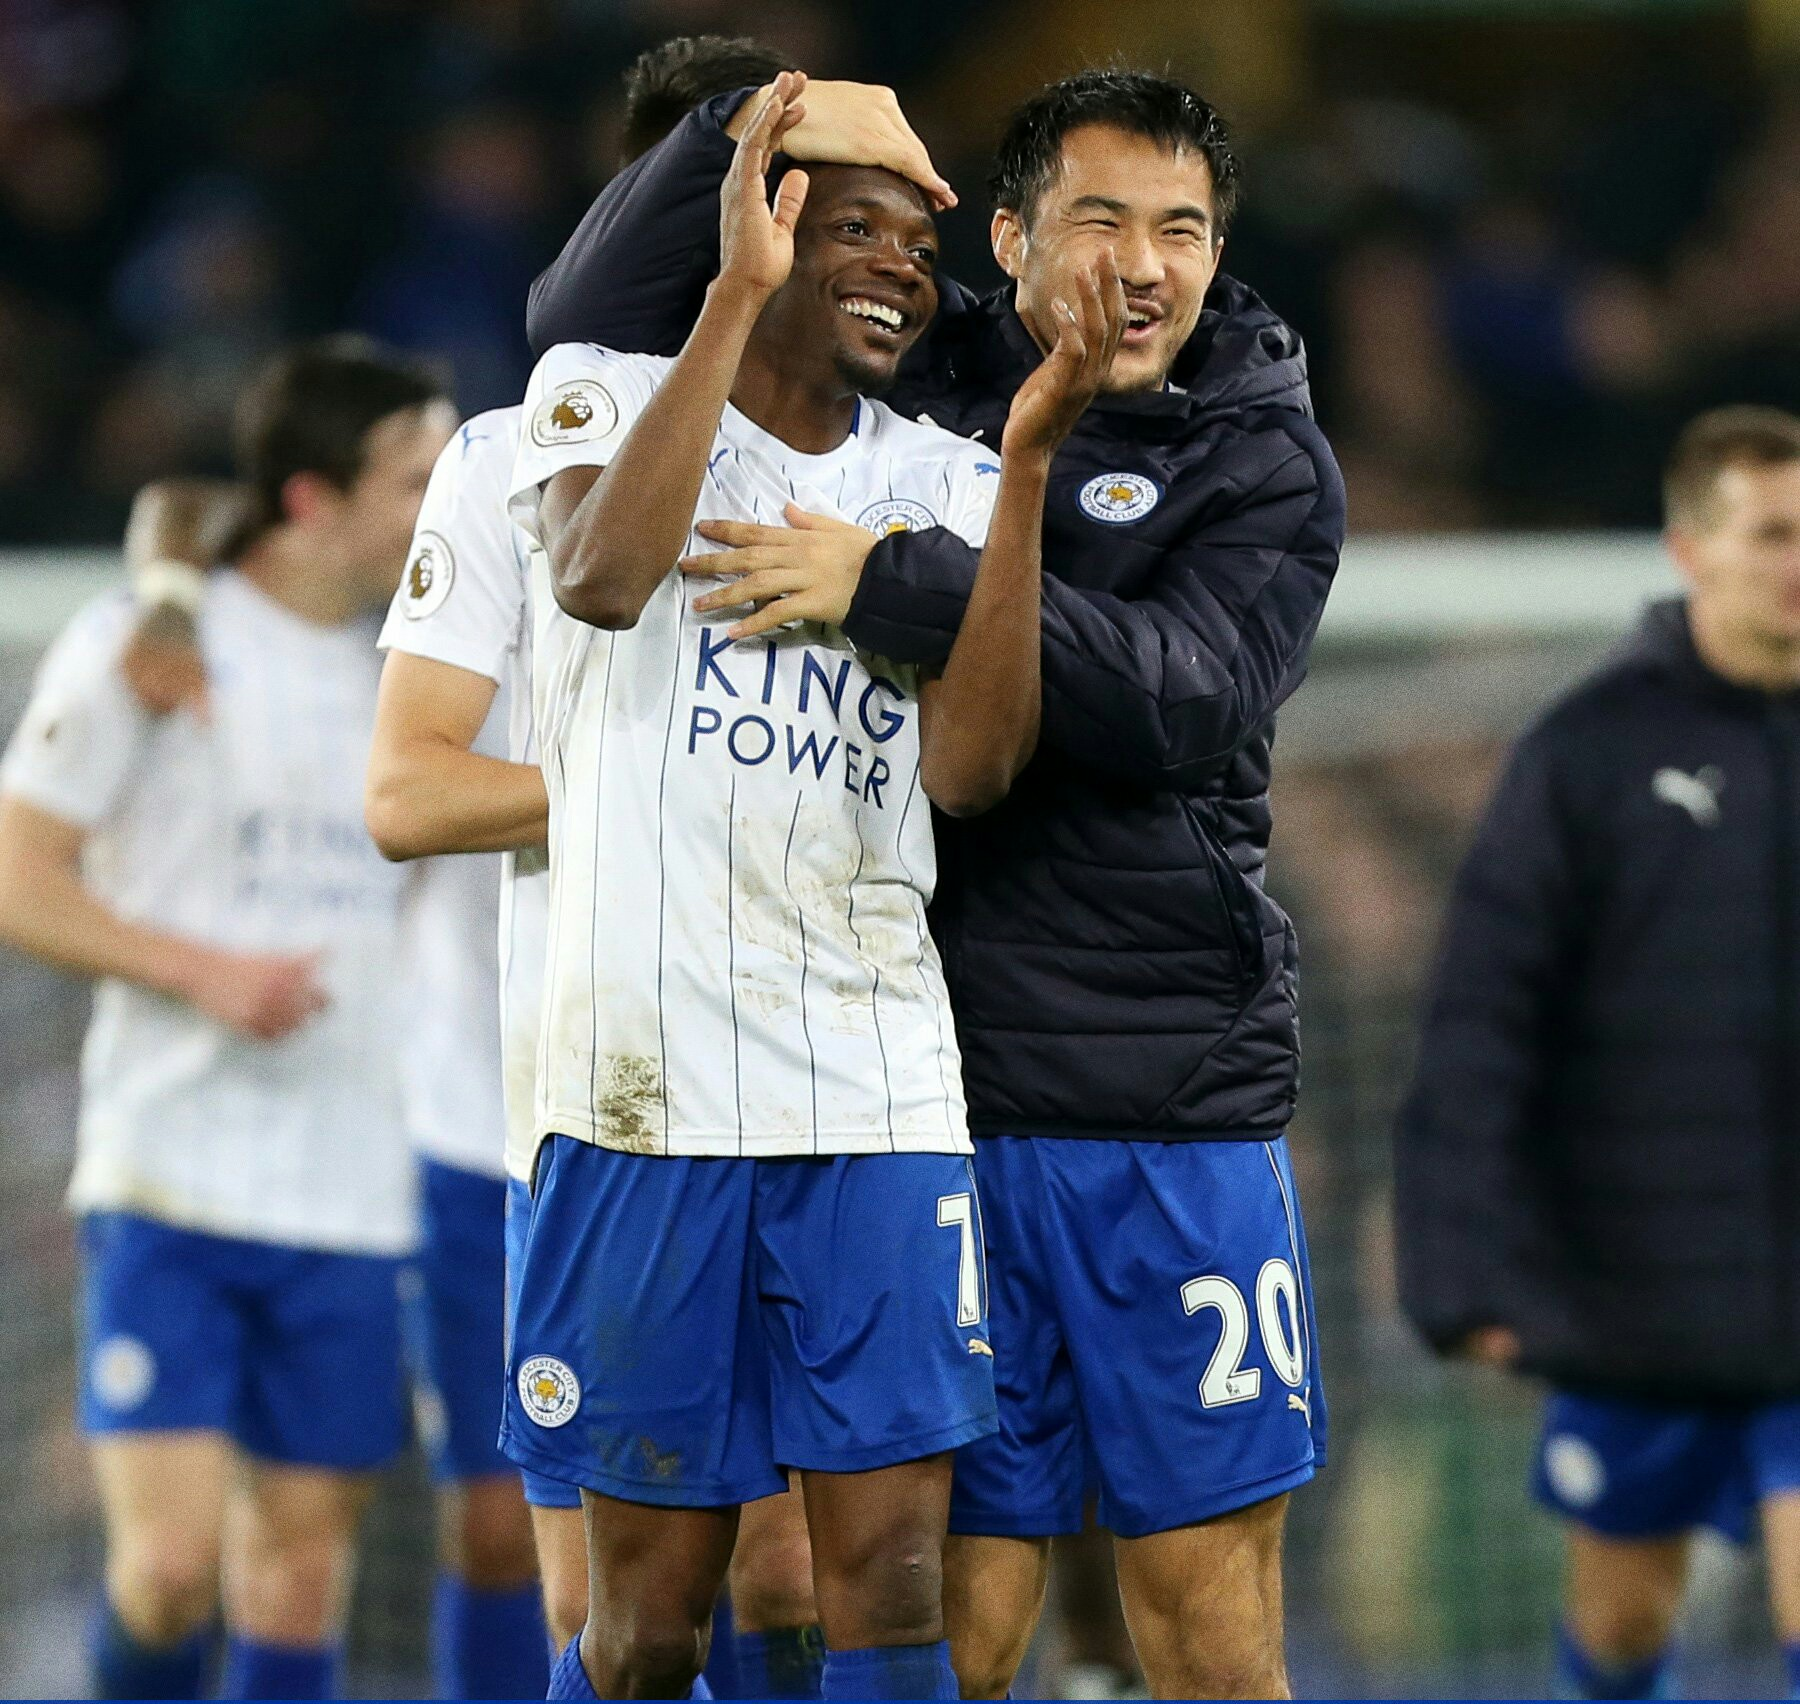 Leicester City should give Kante a good reception, believes Claudio Ranieri